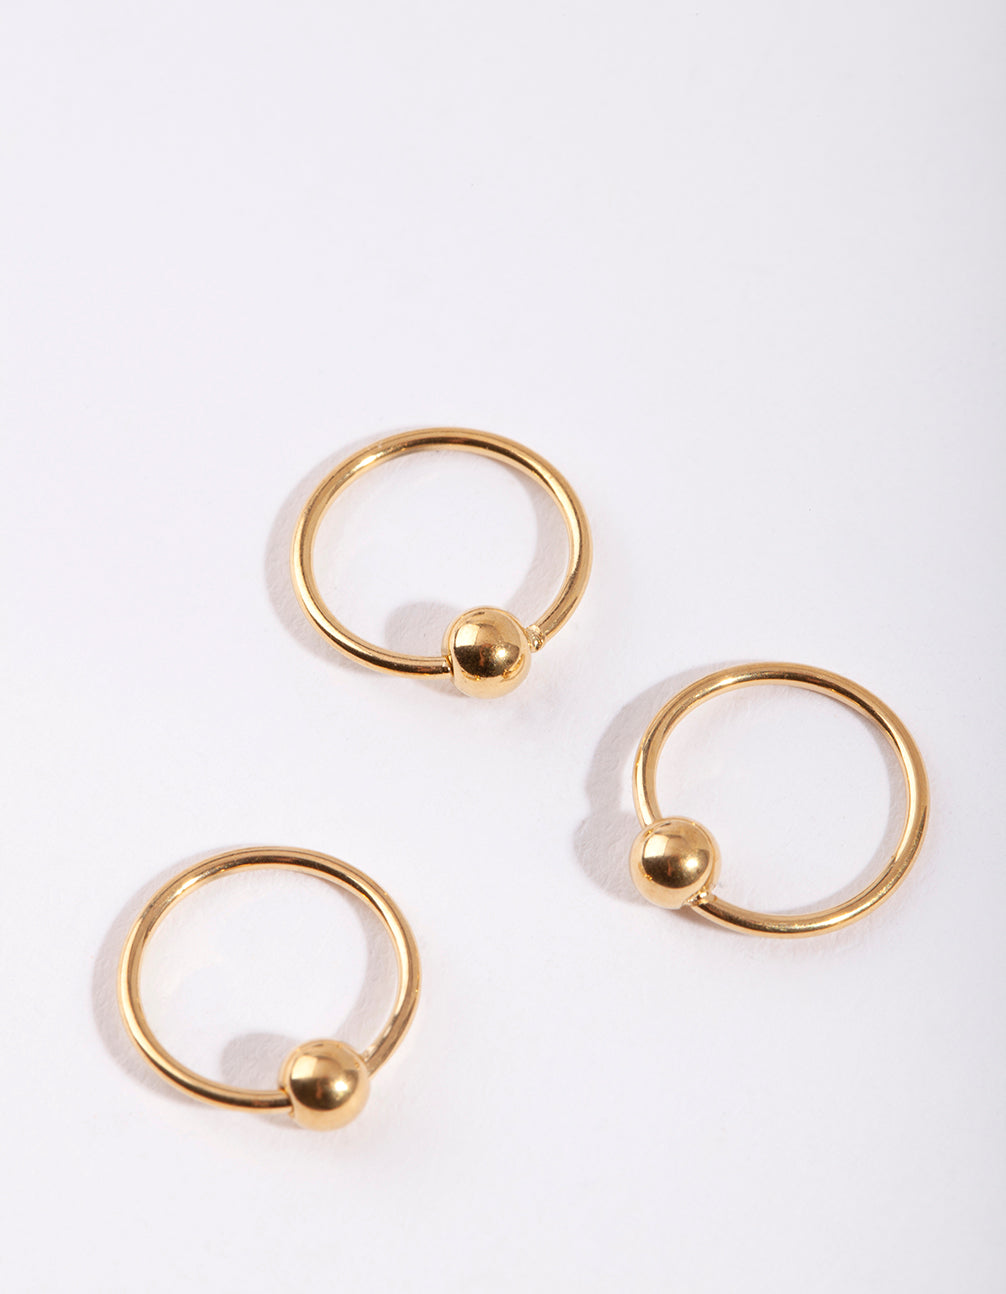 Gold Ball Nose Ring 3 Pack